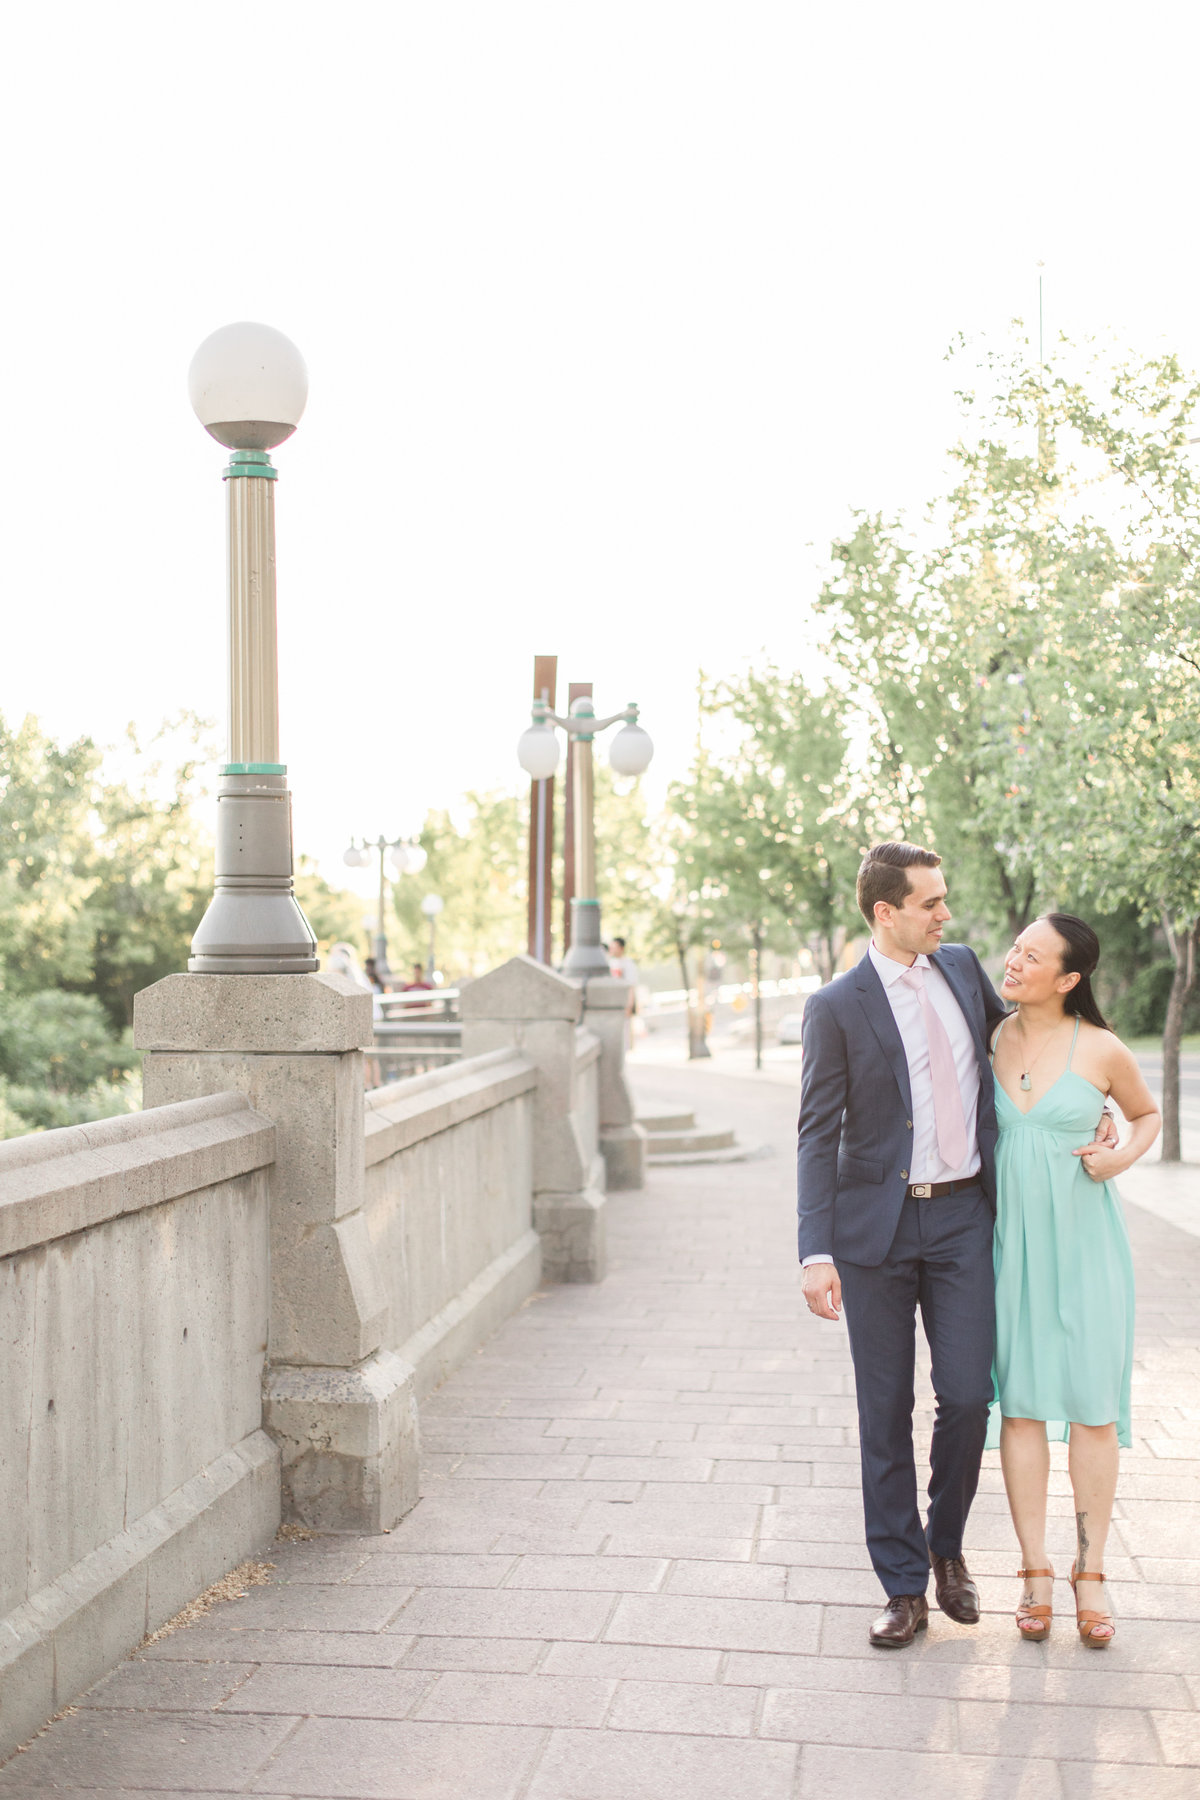 Ottawa-Wedding-Photographer-National-Art-Gallery-Engagement-8